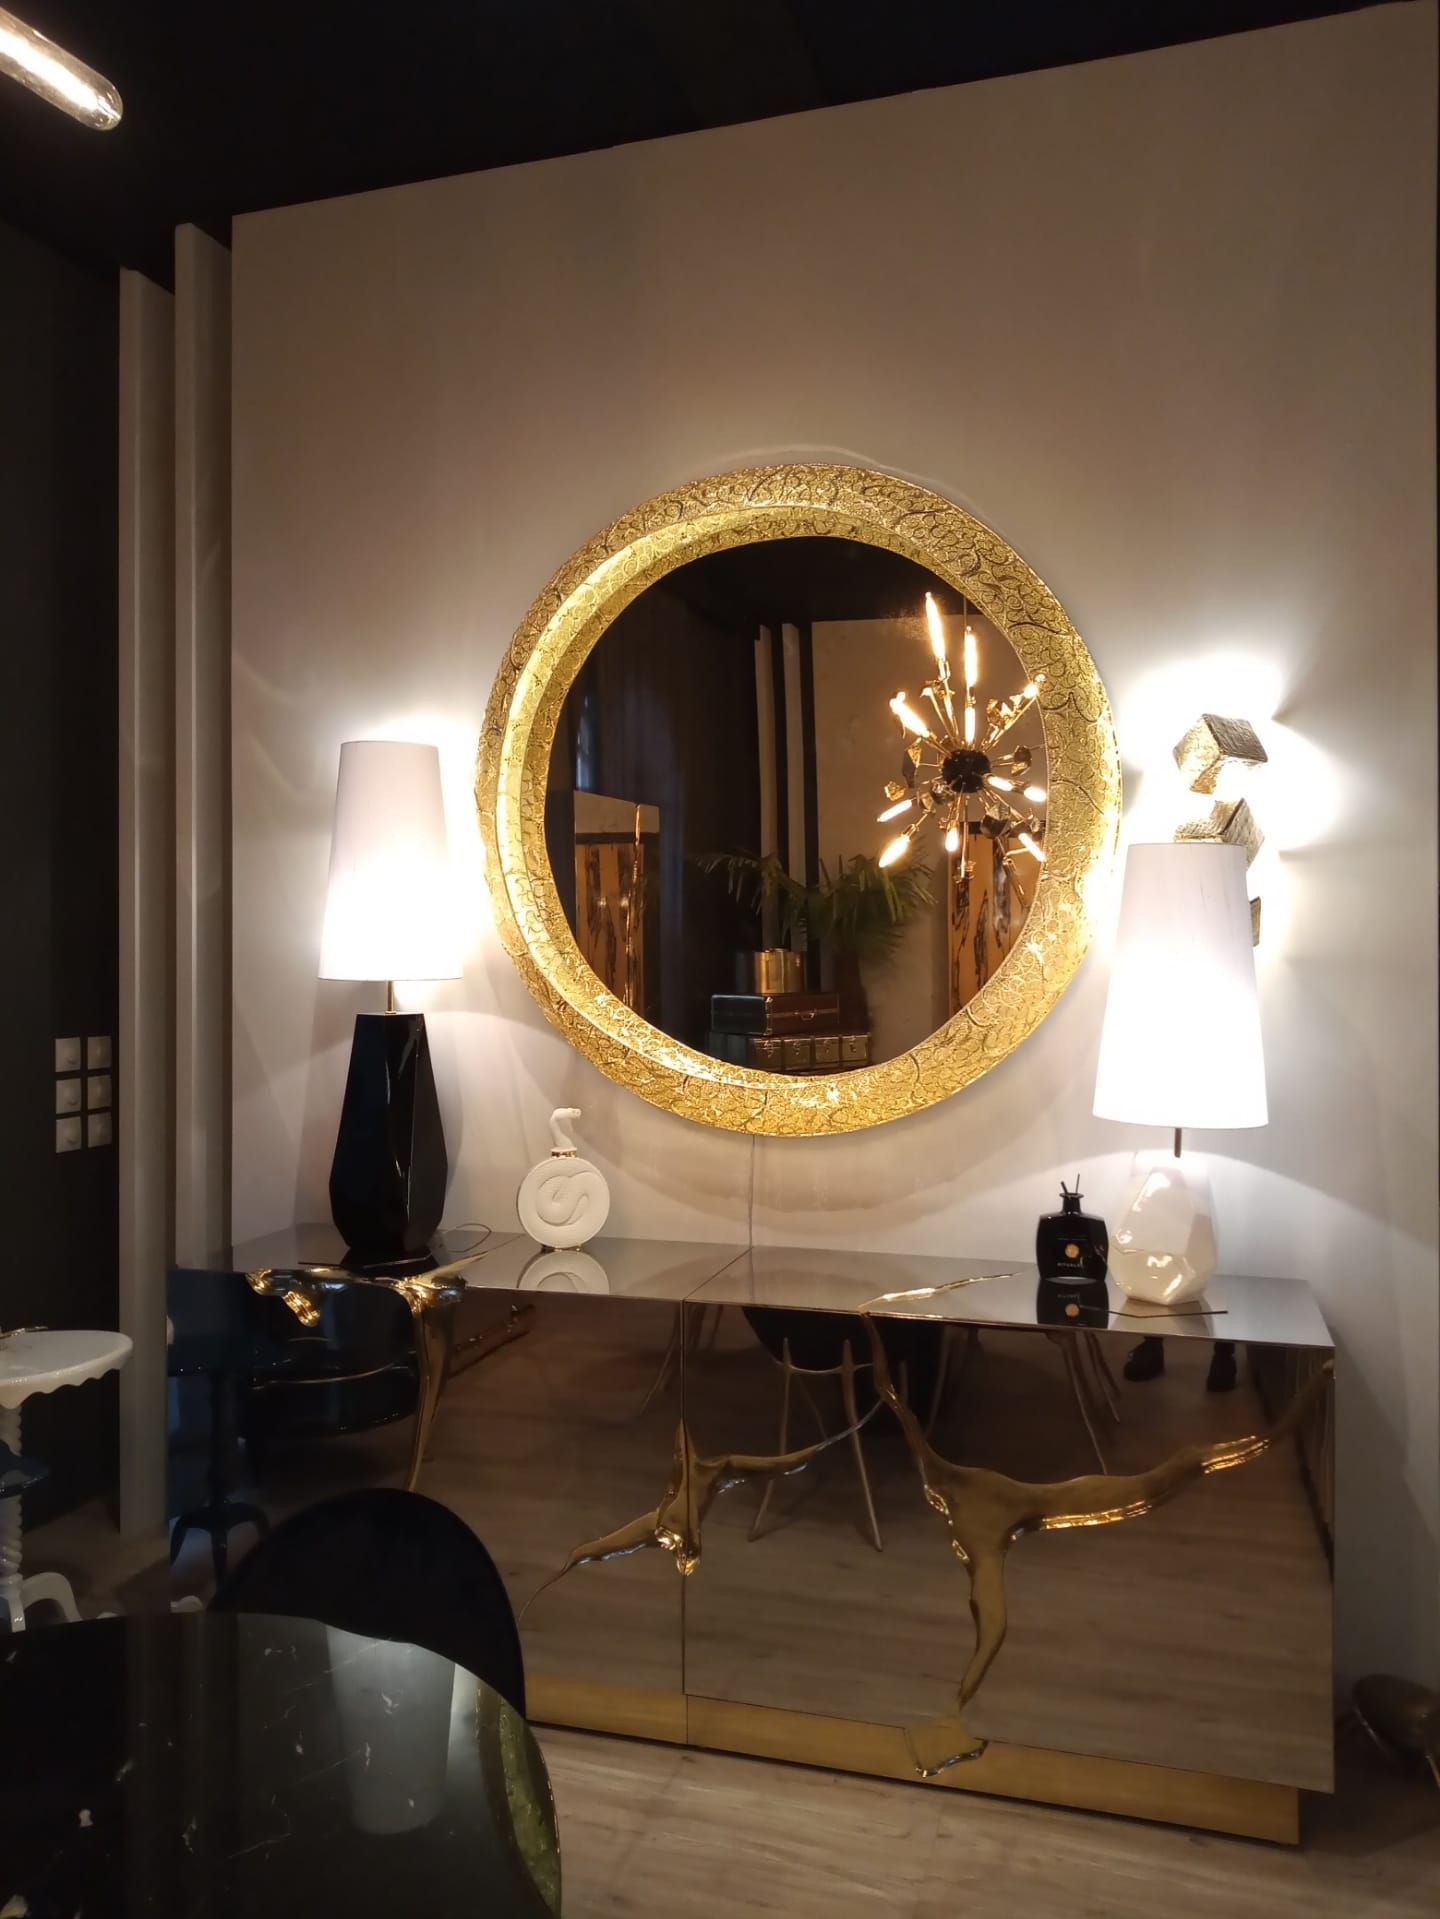 Maison Et Objet 2020 Discover The Highlights From This Design